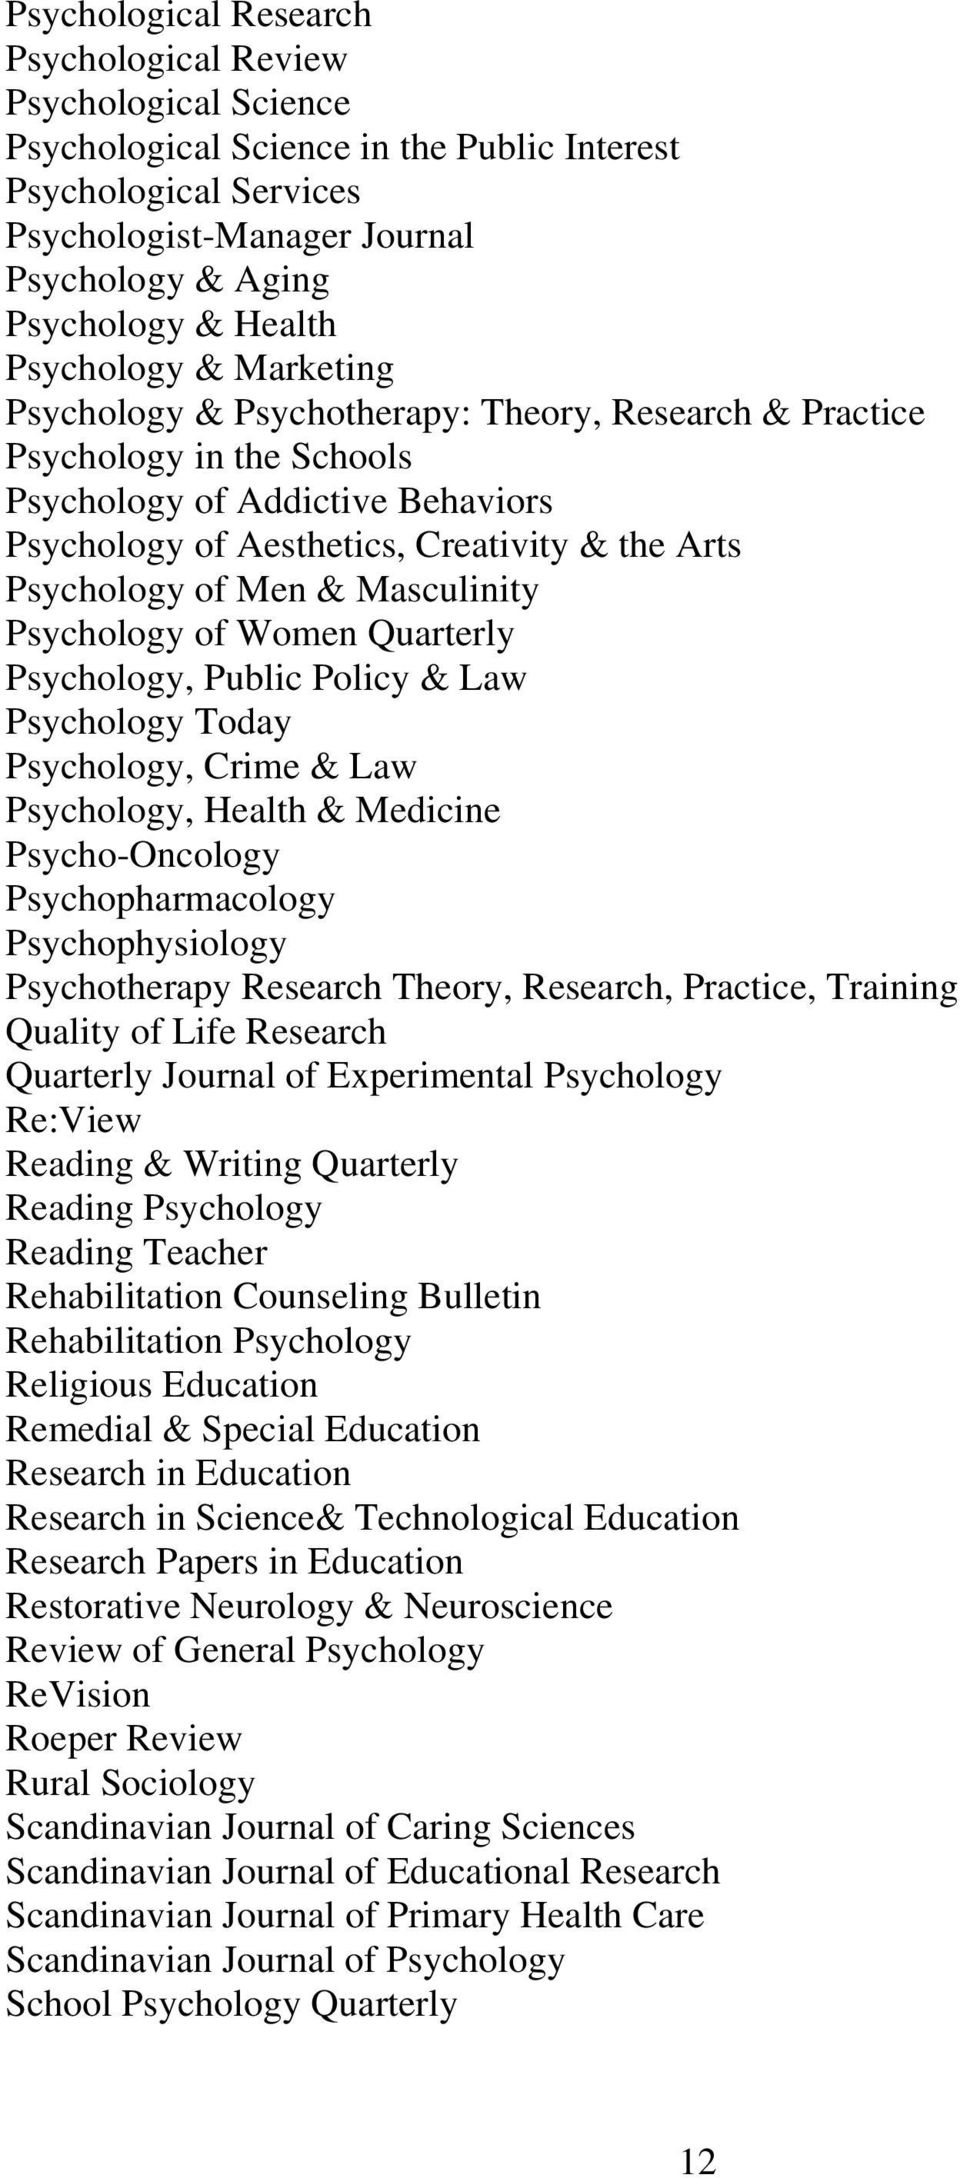 Psychology of Men & Masculinity Psychology of Women Quarterly Psychology, Public Policy & Law Psychology Today Psychology, Crime & Law Psychology, Health & Medicine Psycho-Oncology Psychopharmacology